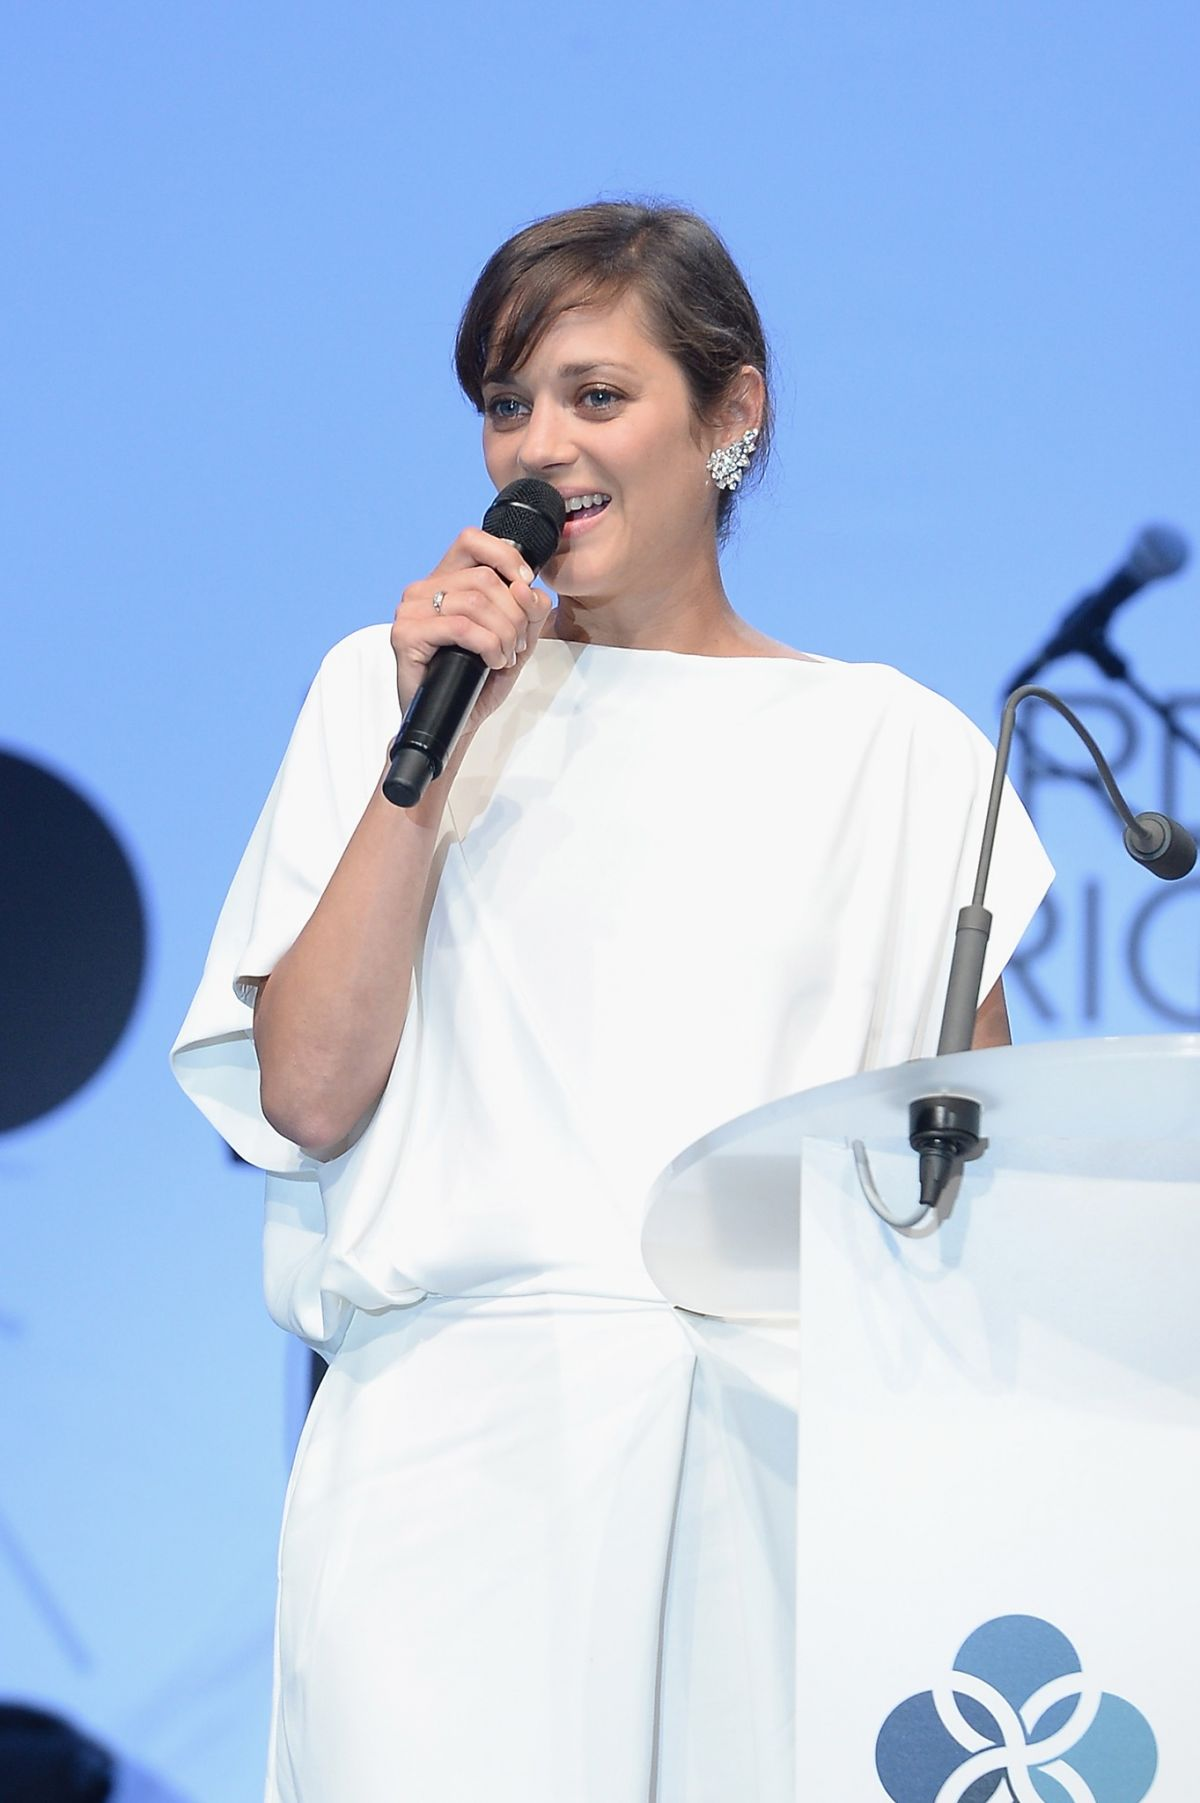 MARION COTILLARD at Leonardo Dicaprio Foundation Inaugurational Gala